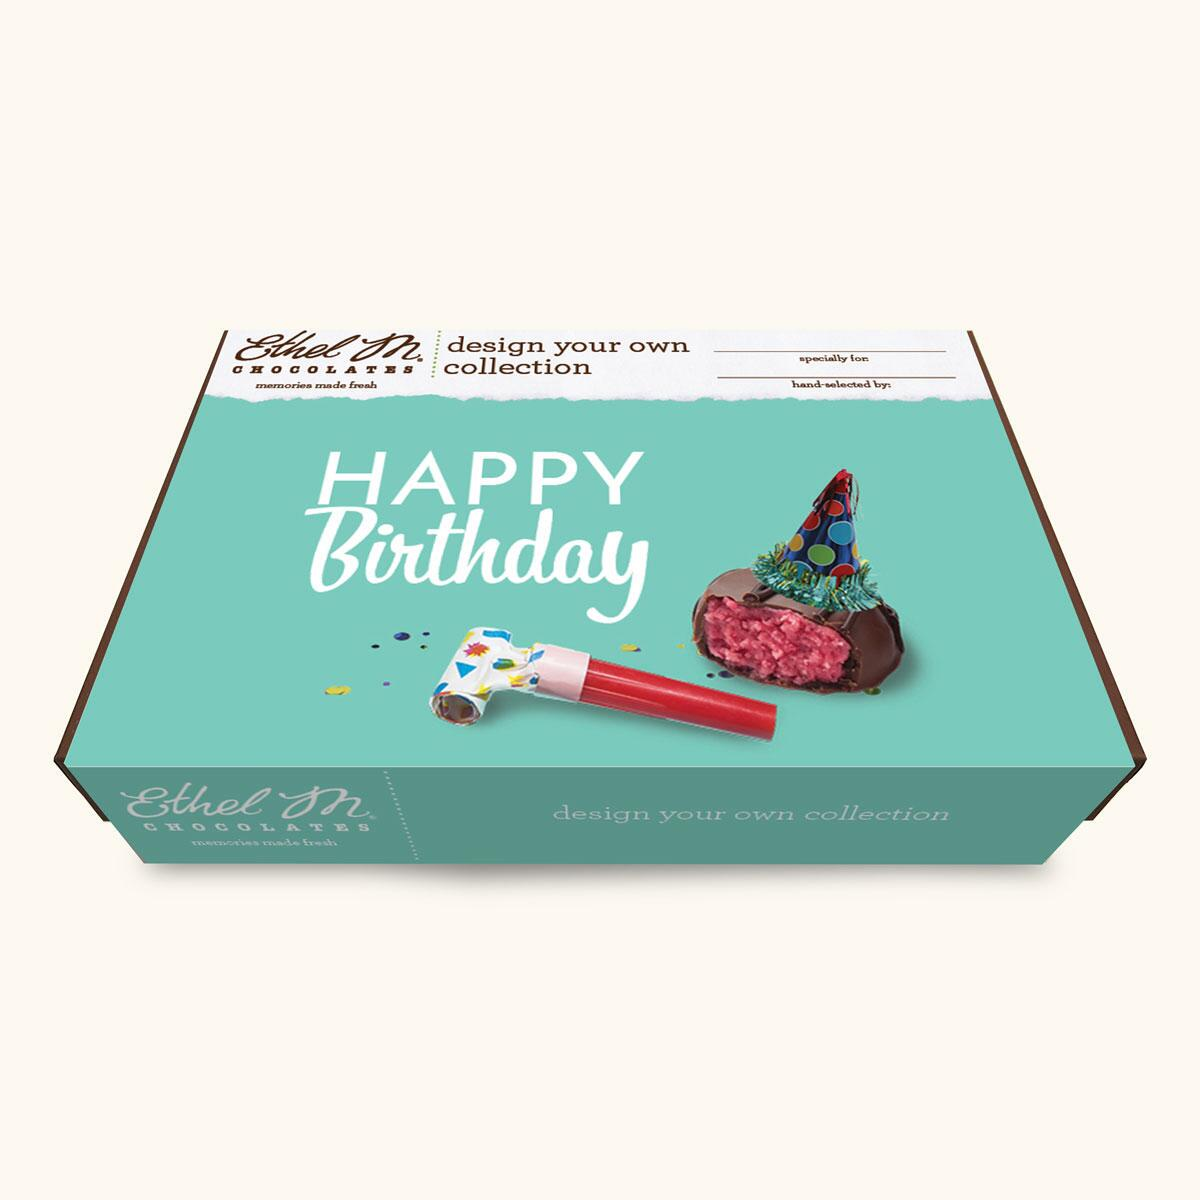 Design Your Own HAPPY BIRTHDAY Chocolate Assortment, Two-Layer Collection, 40-80 Total Pieces